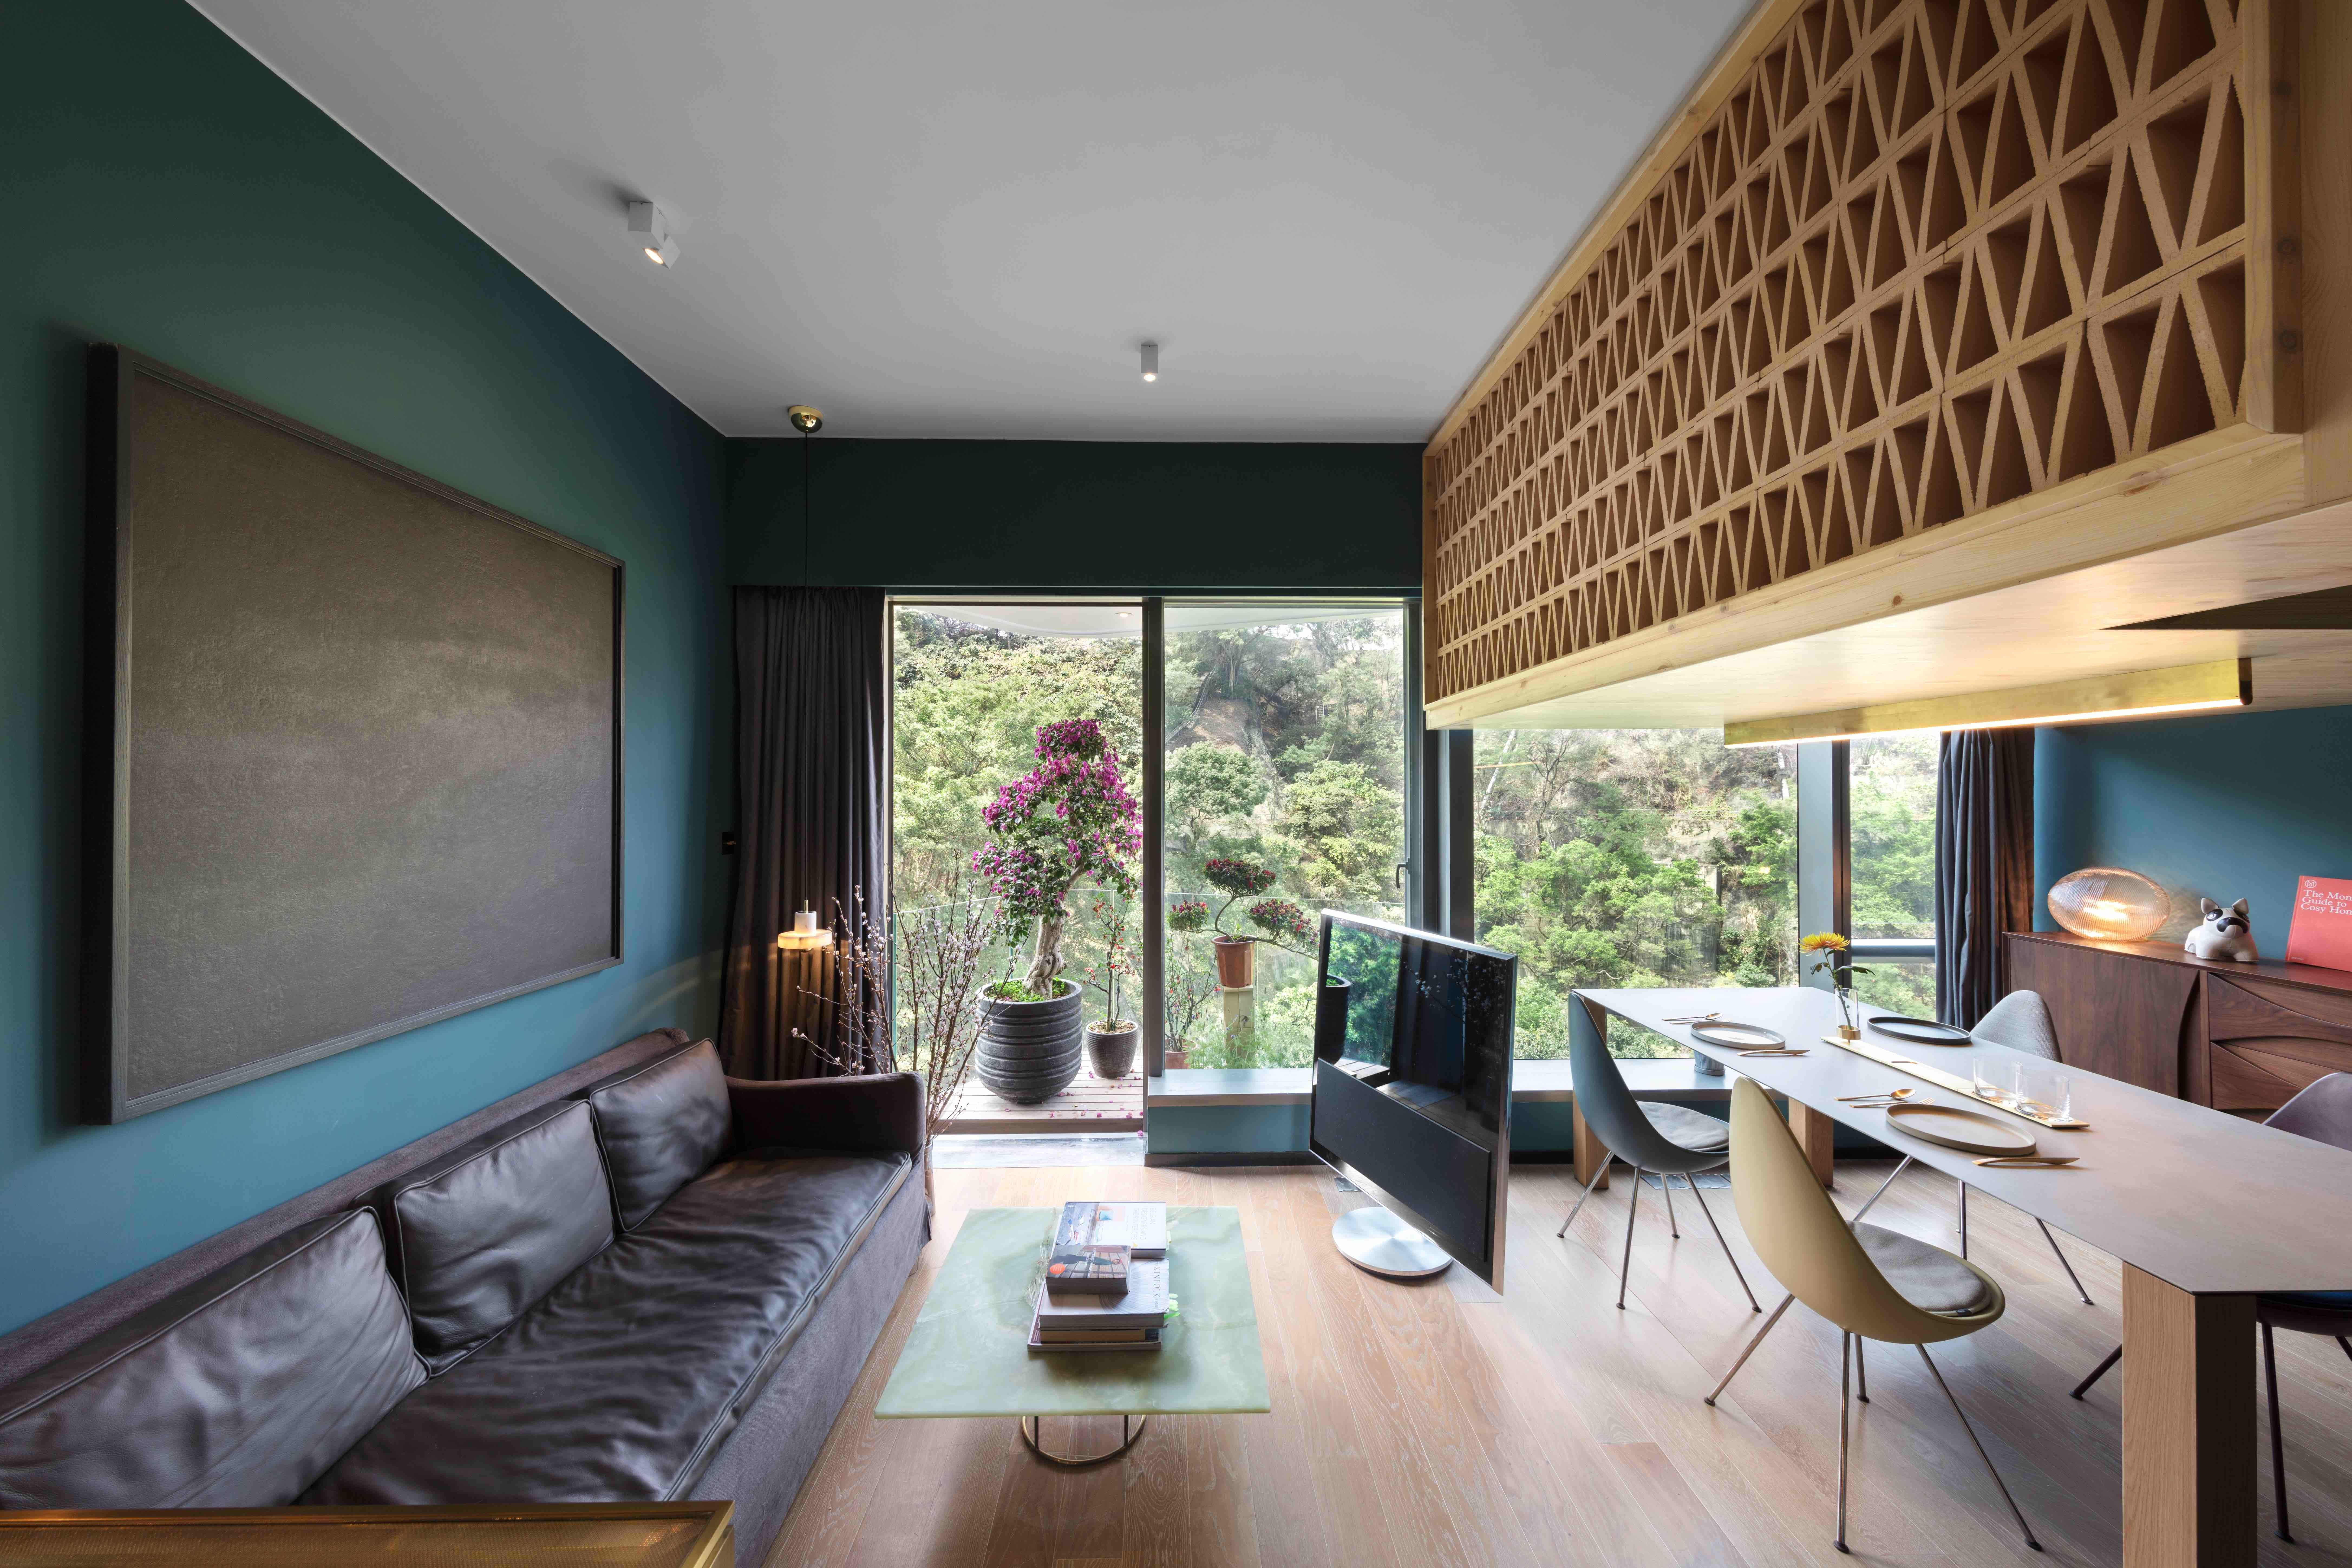 Hong Kong Woonkamer : Photo of in a tiny hong kong apartment with a tree house